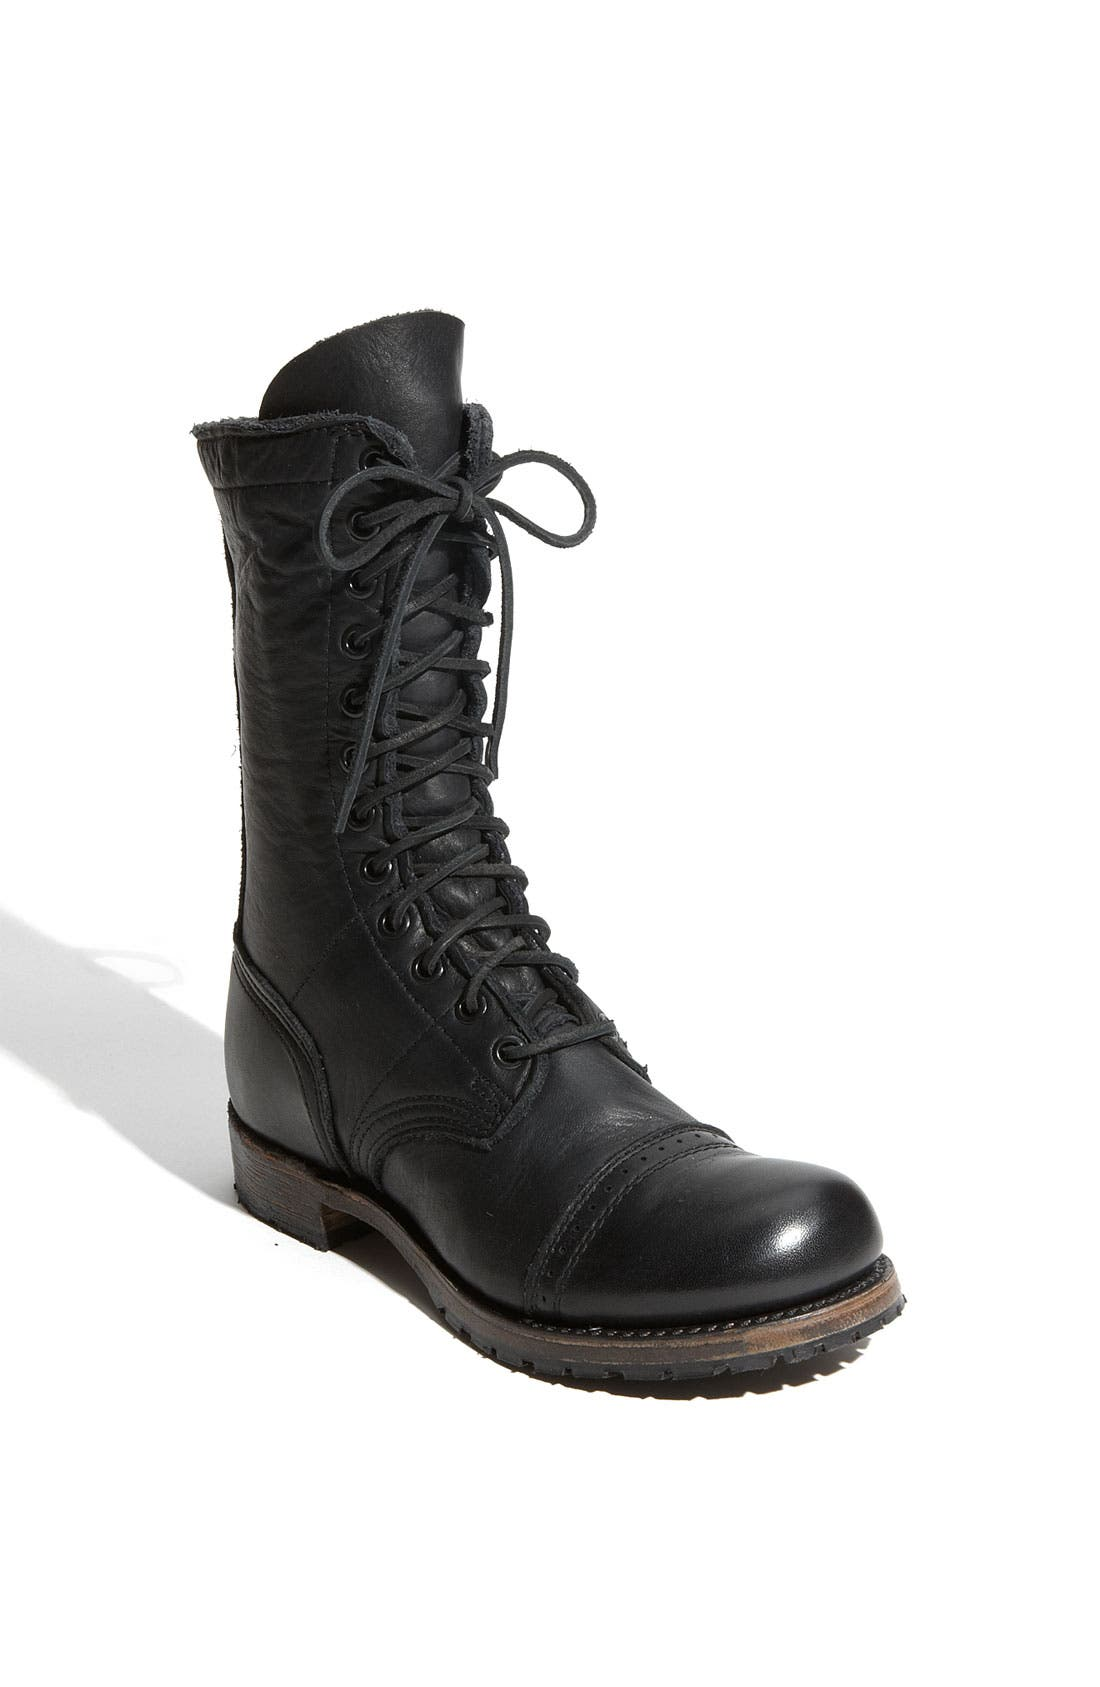 Alternate Image 1 Selected - Vintage Shoe Company 'Molly' Boot